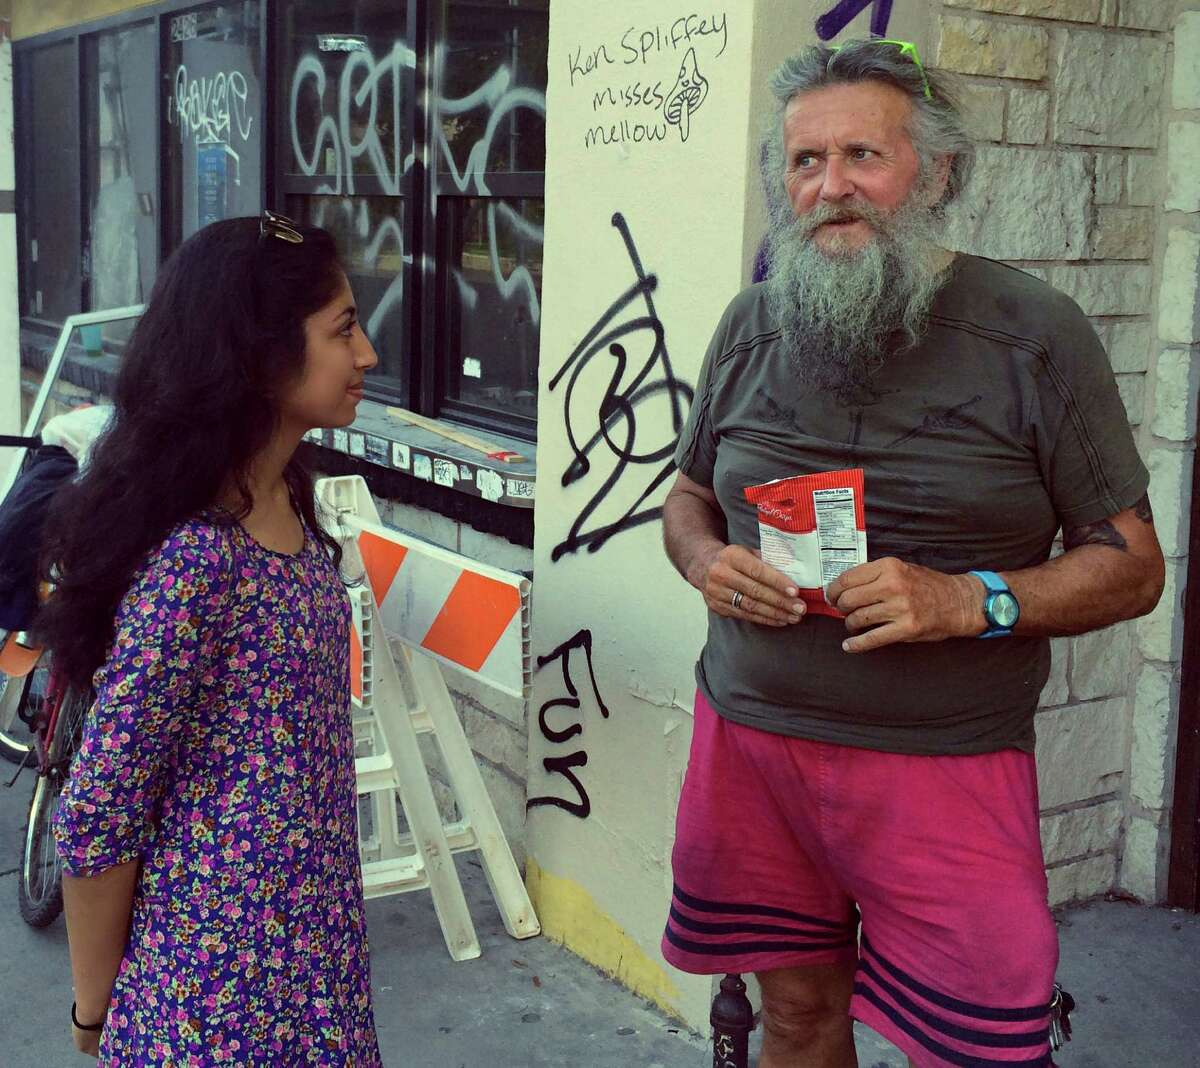 Kavina Patel, a UTSA sophomore, speaks to David, a homeless man in Austin. Patel is co-founder of VideoMed, a project to bring psychiatry services to homeless people via computer.